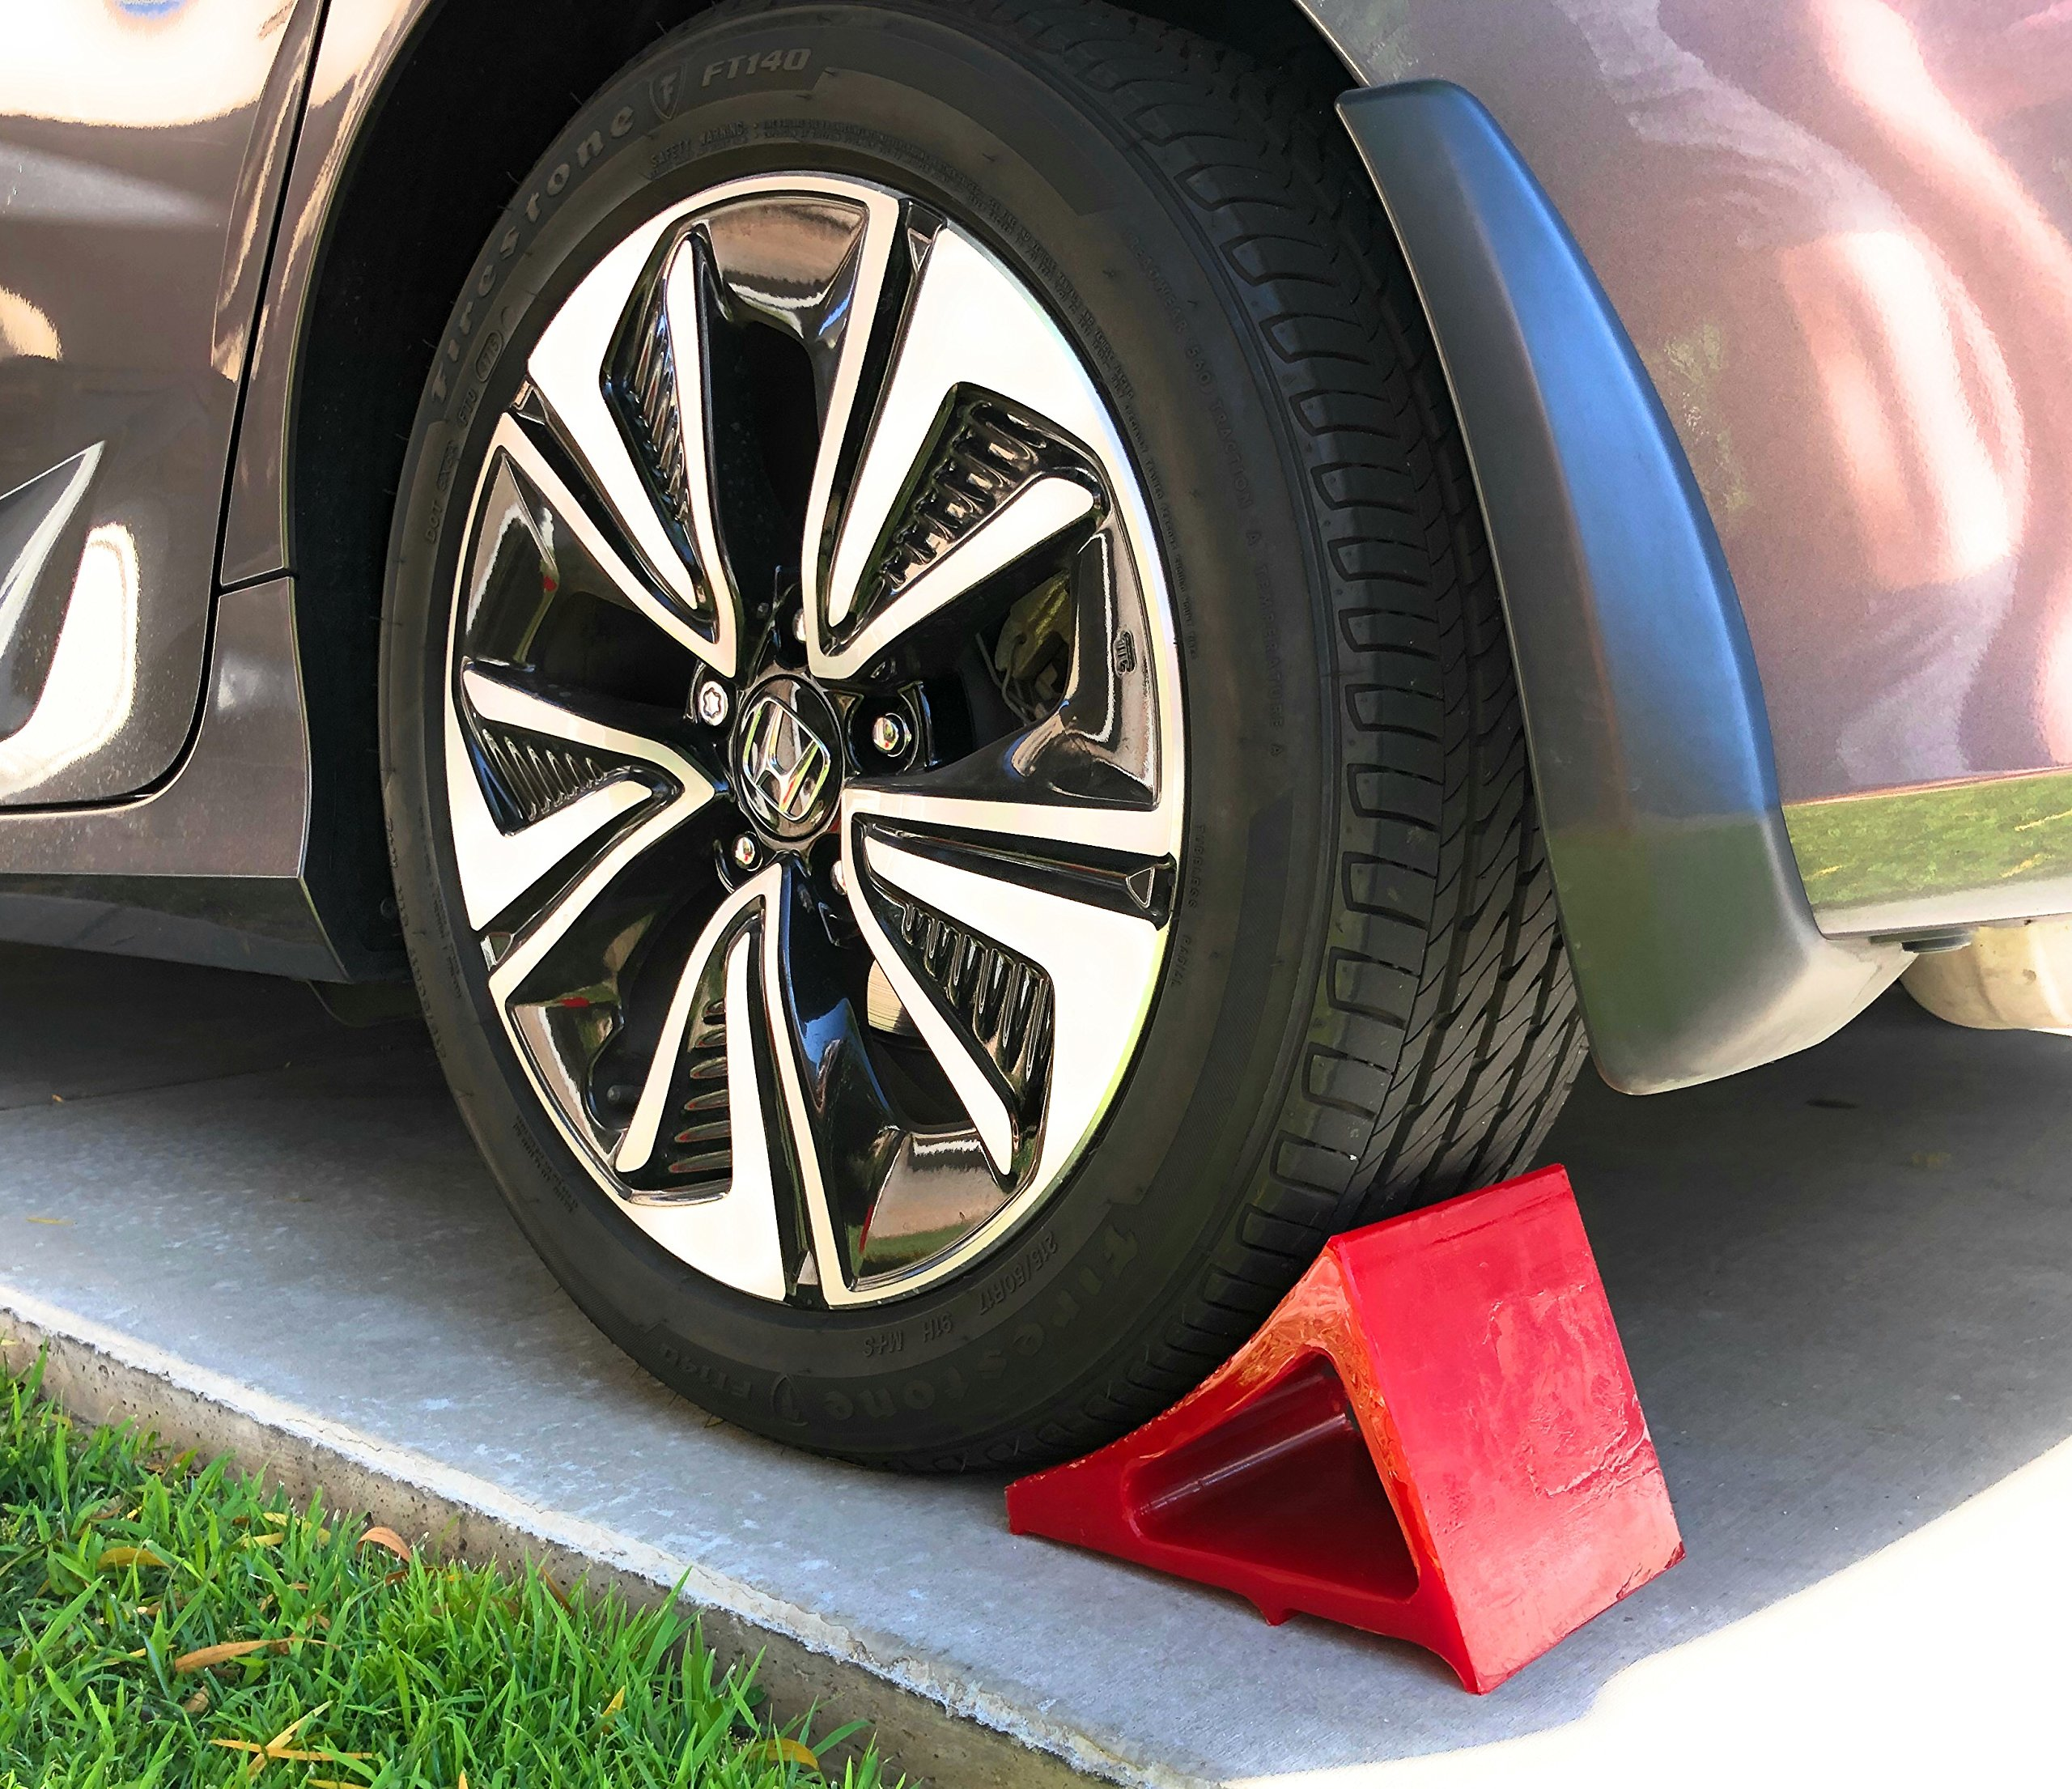 Tire & Wheel Chock - Ideal Camping Accessory for RV Motorhome, Trailer, Truck, Motorcycle & Car. Weatherproof, Outdoor Grade, Polyurethane Better Than Rubber or Plastic, 5 Year Warranty, 2 Pack Red by Elasco Products (Image #5)